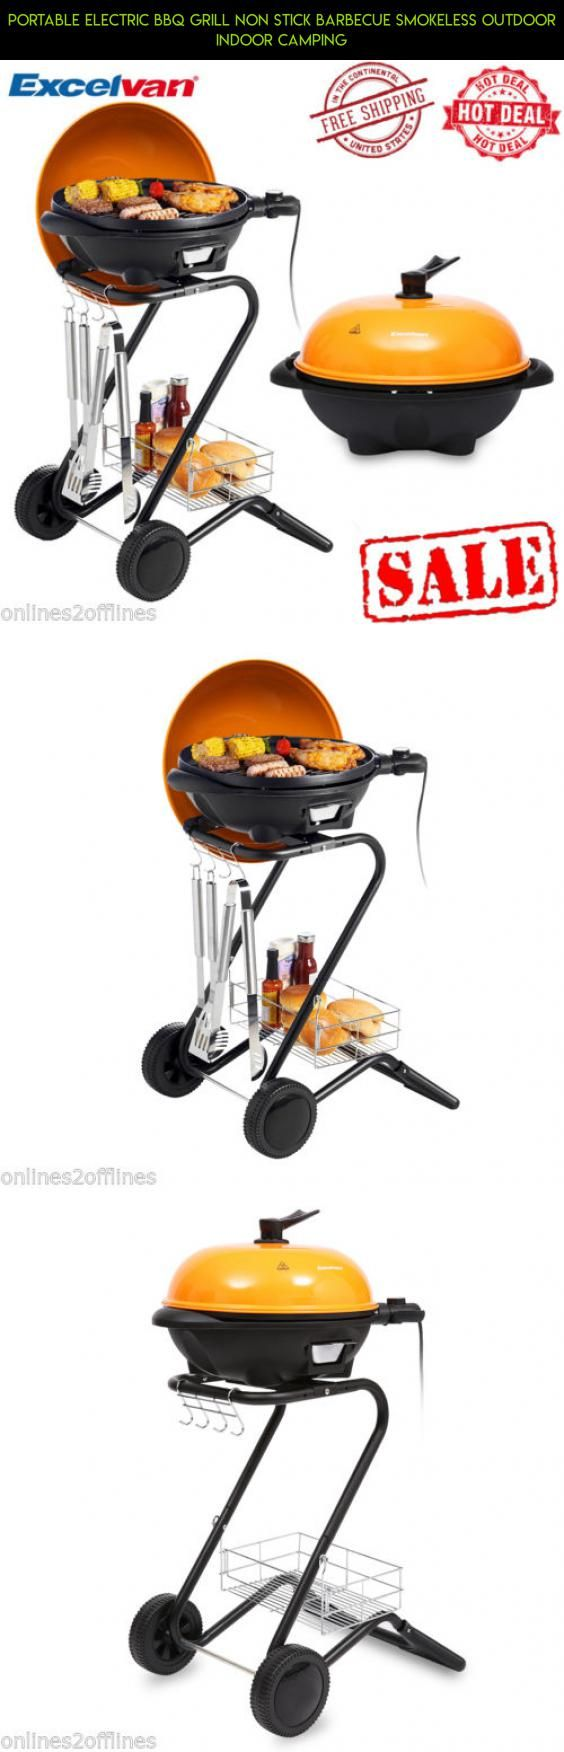 Portable Electric BBQ Grill Non Stick Barbecue Smokeless Outdoor Indoor Camping #tech #outdoor #gadgets #fpv #technology #plans #kit #drone #electric #grills #parts #products #indoor #camera #racing #shopping